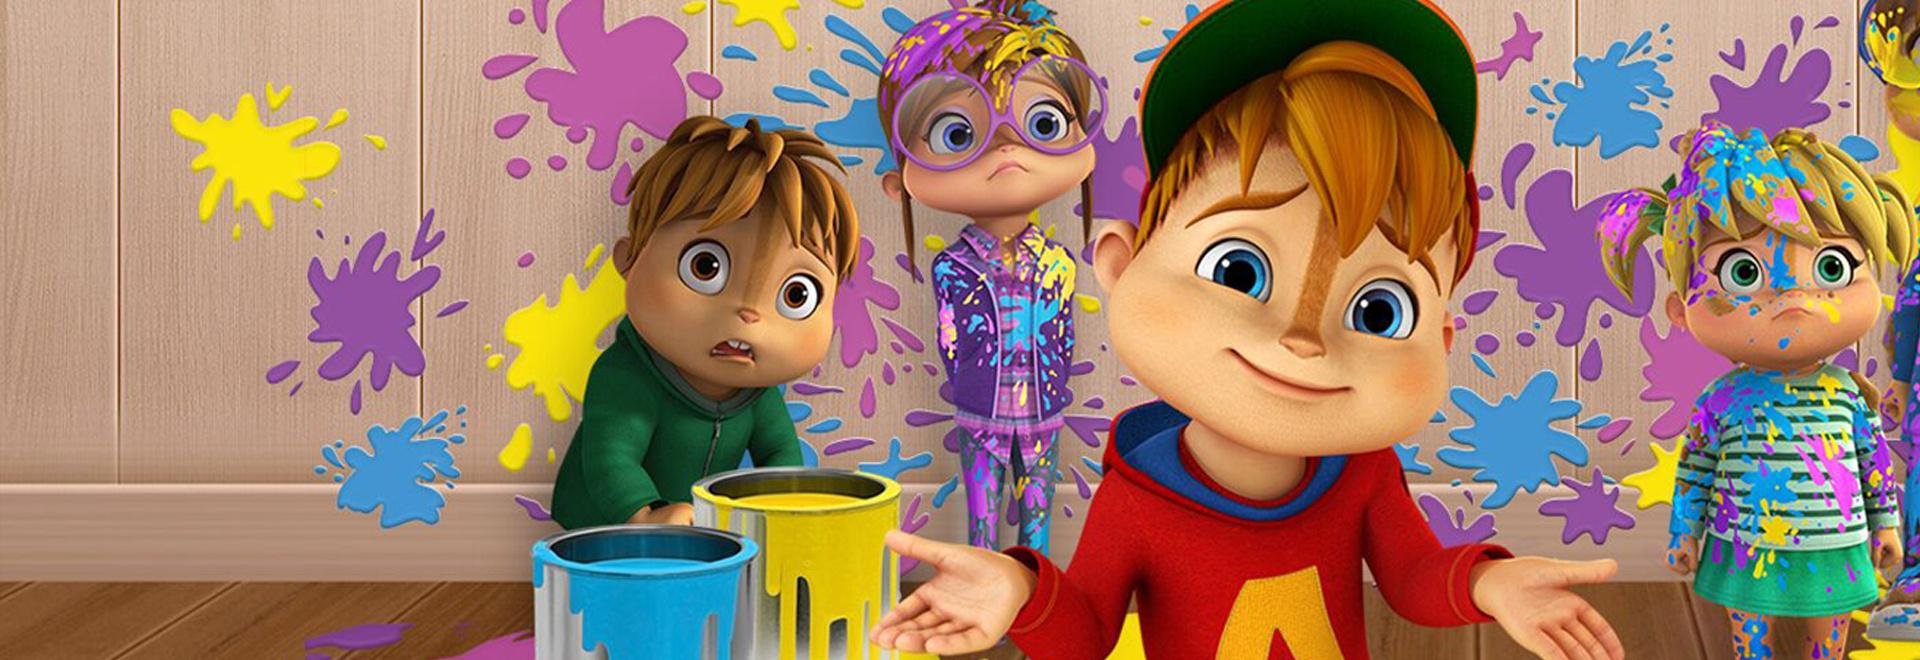 Alvinnn!!! And the Chipmunks - Stag. 2 Ep. 1